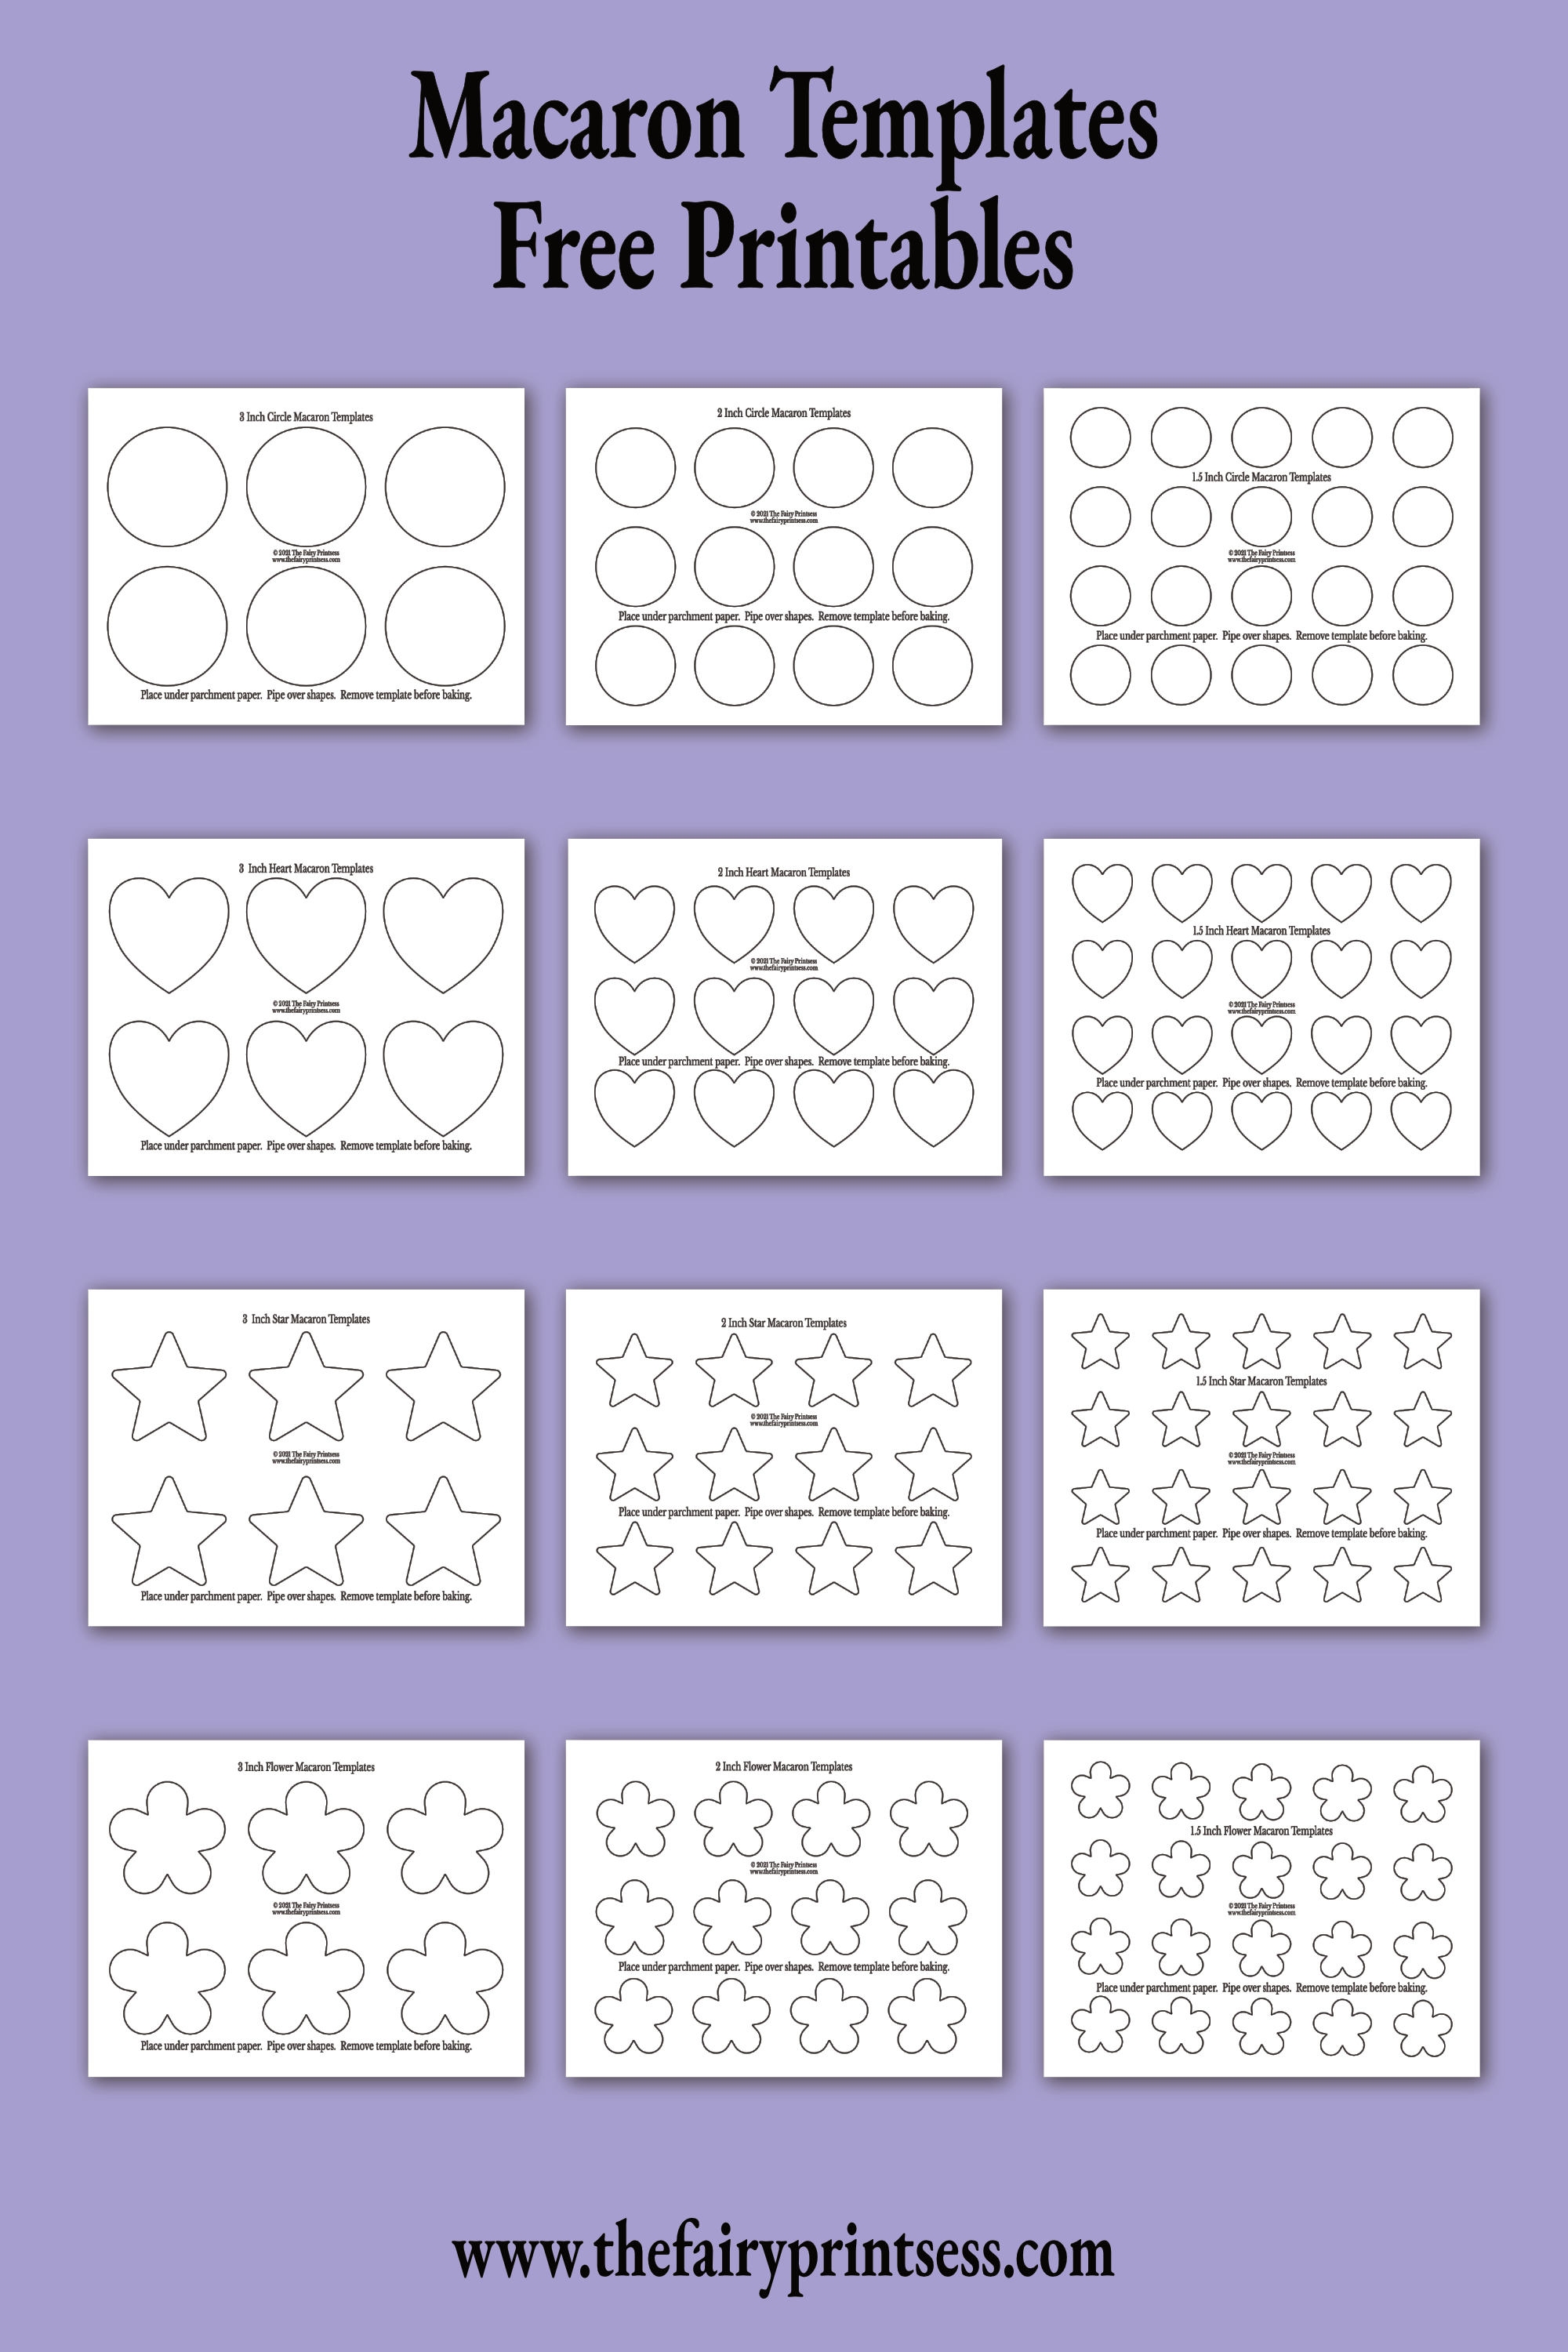 Vintage French Valentine Heart Banners Free Printable In 2021 Macaron Template Templates Printable Free Macaroon Template